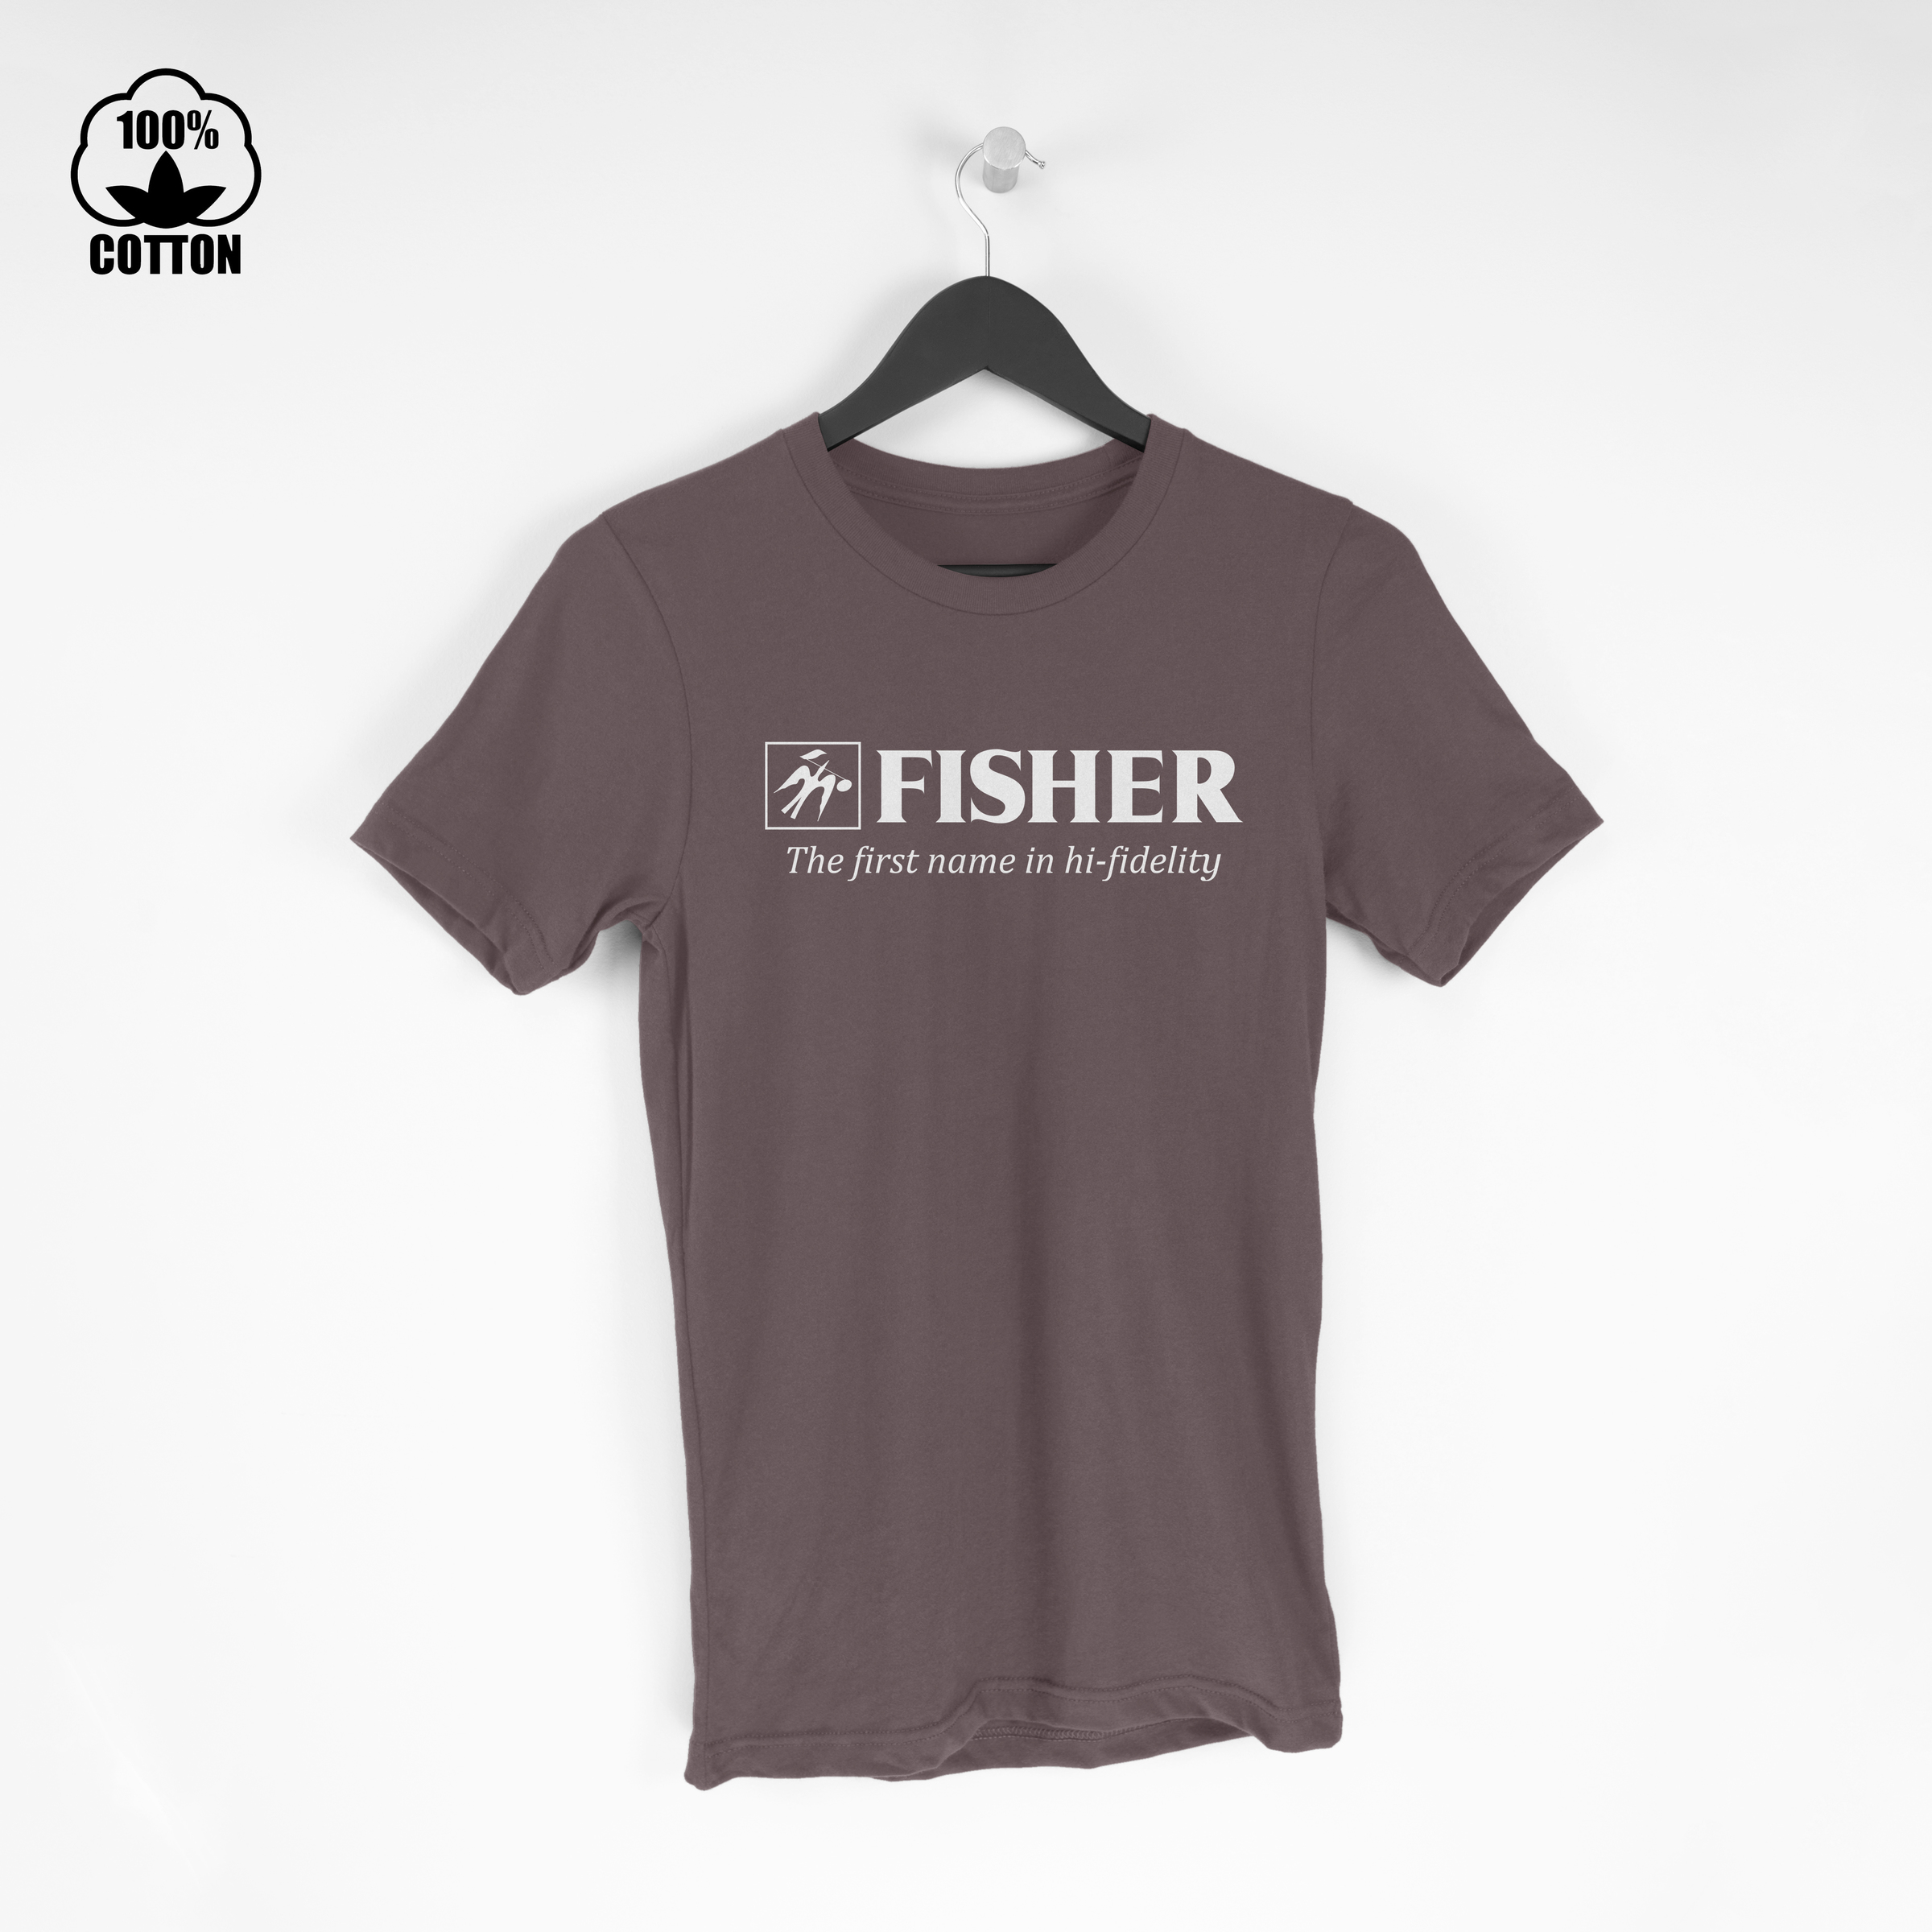 Fisher Logo Electronics Audio Stereo Components Hi-Fi Amplifier Tuner  Tshirt Size M-XXL USA SaddleBrown.jpg